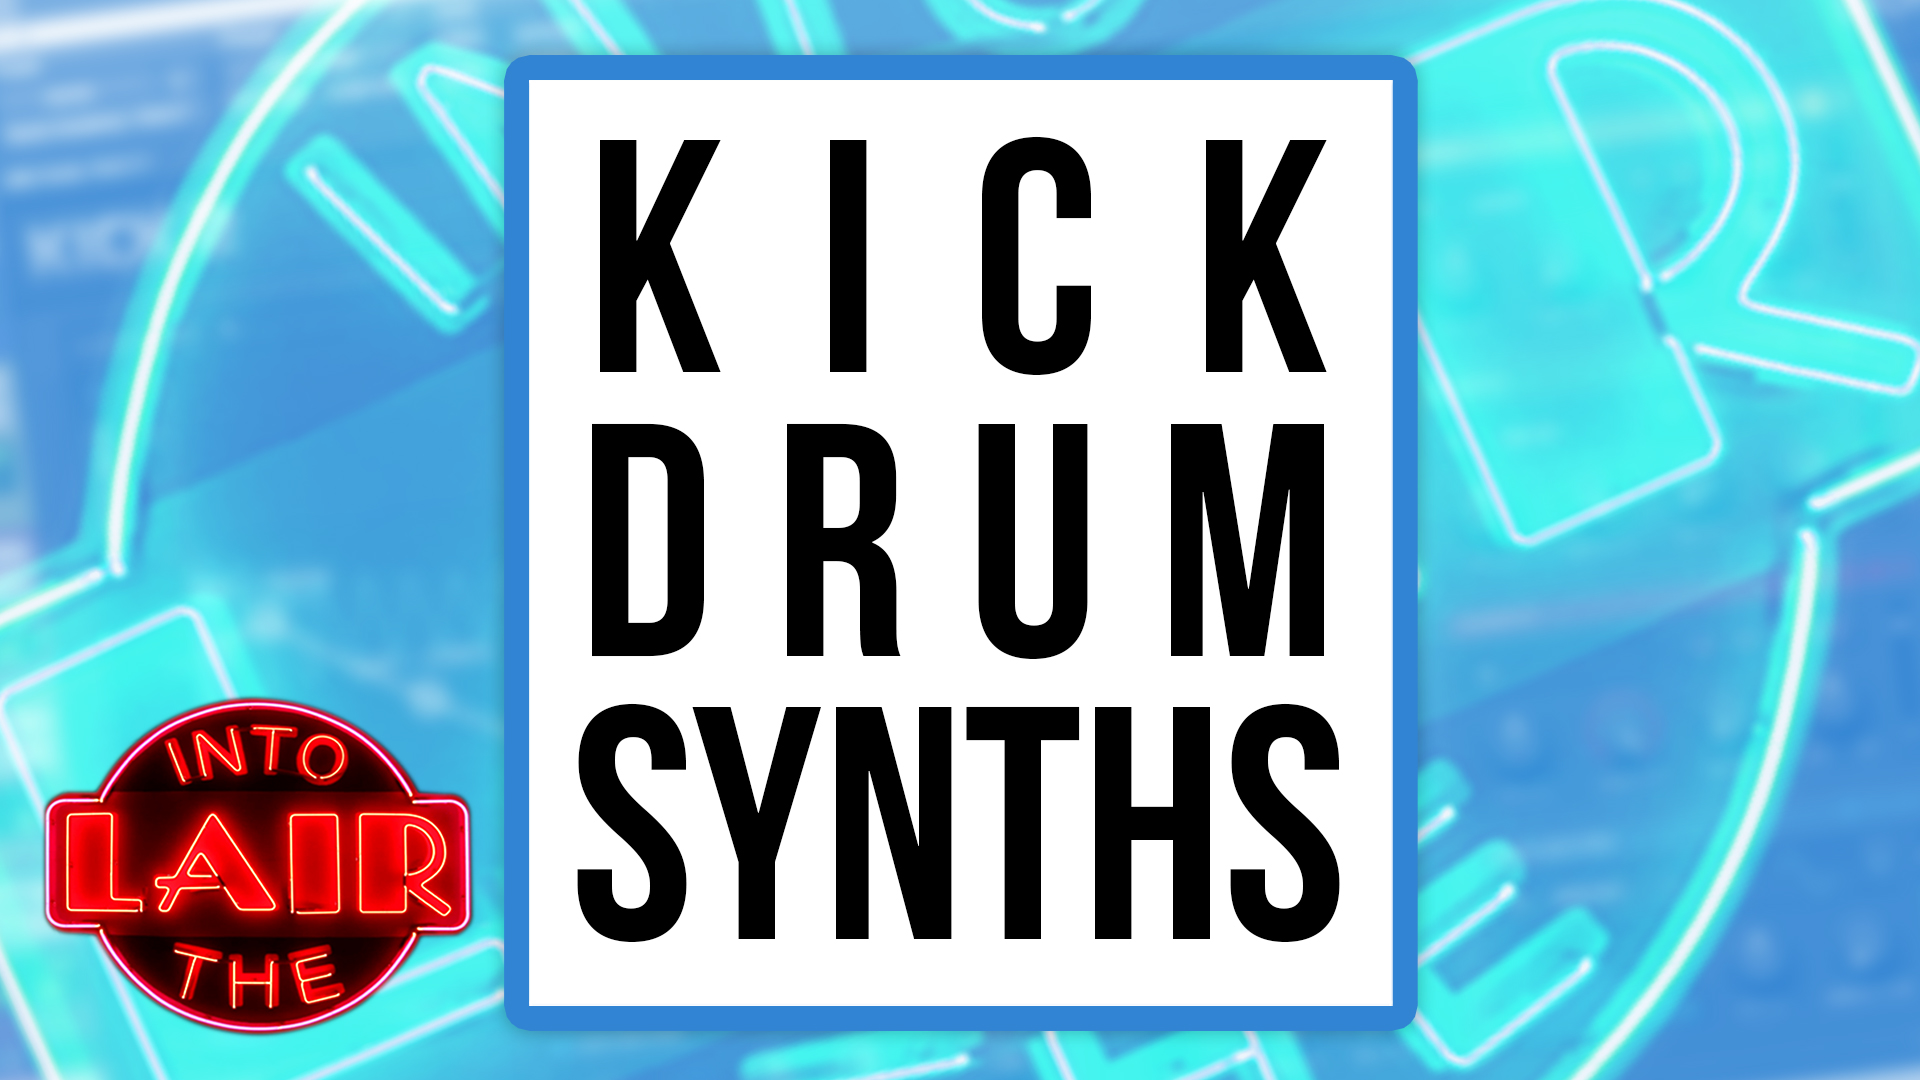 Kick Drum Synths